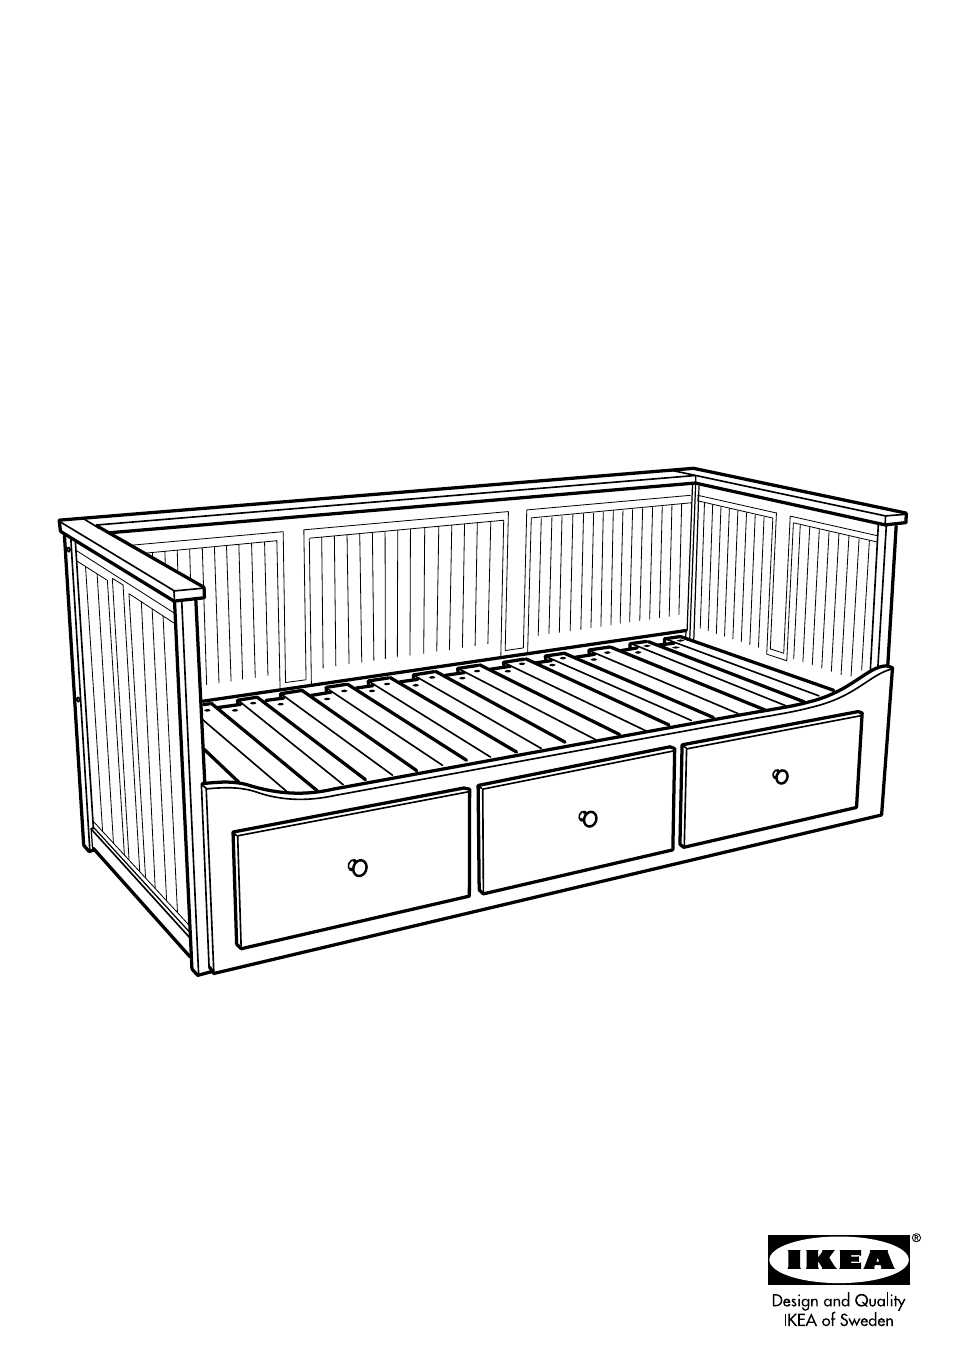 IKEA HEMNES DAY BED W/ 3 DRAWERS Manual